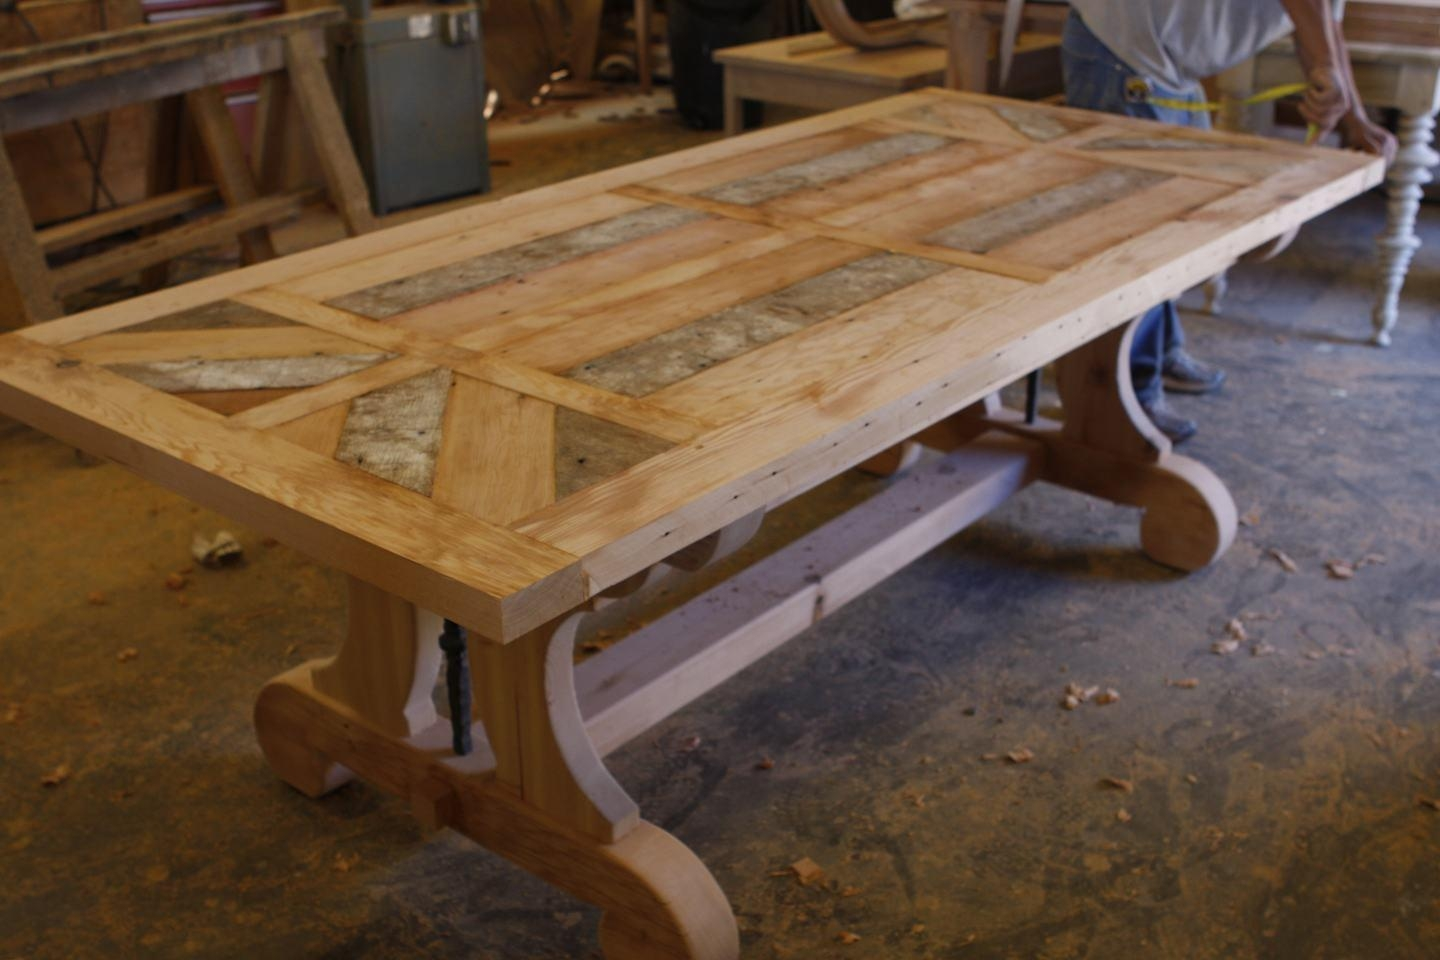 Luxury Custom Trestle Dining Table With Leaf Extensions Built In Reclaimed Wood reclaimed wood dining room table